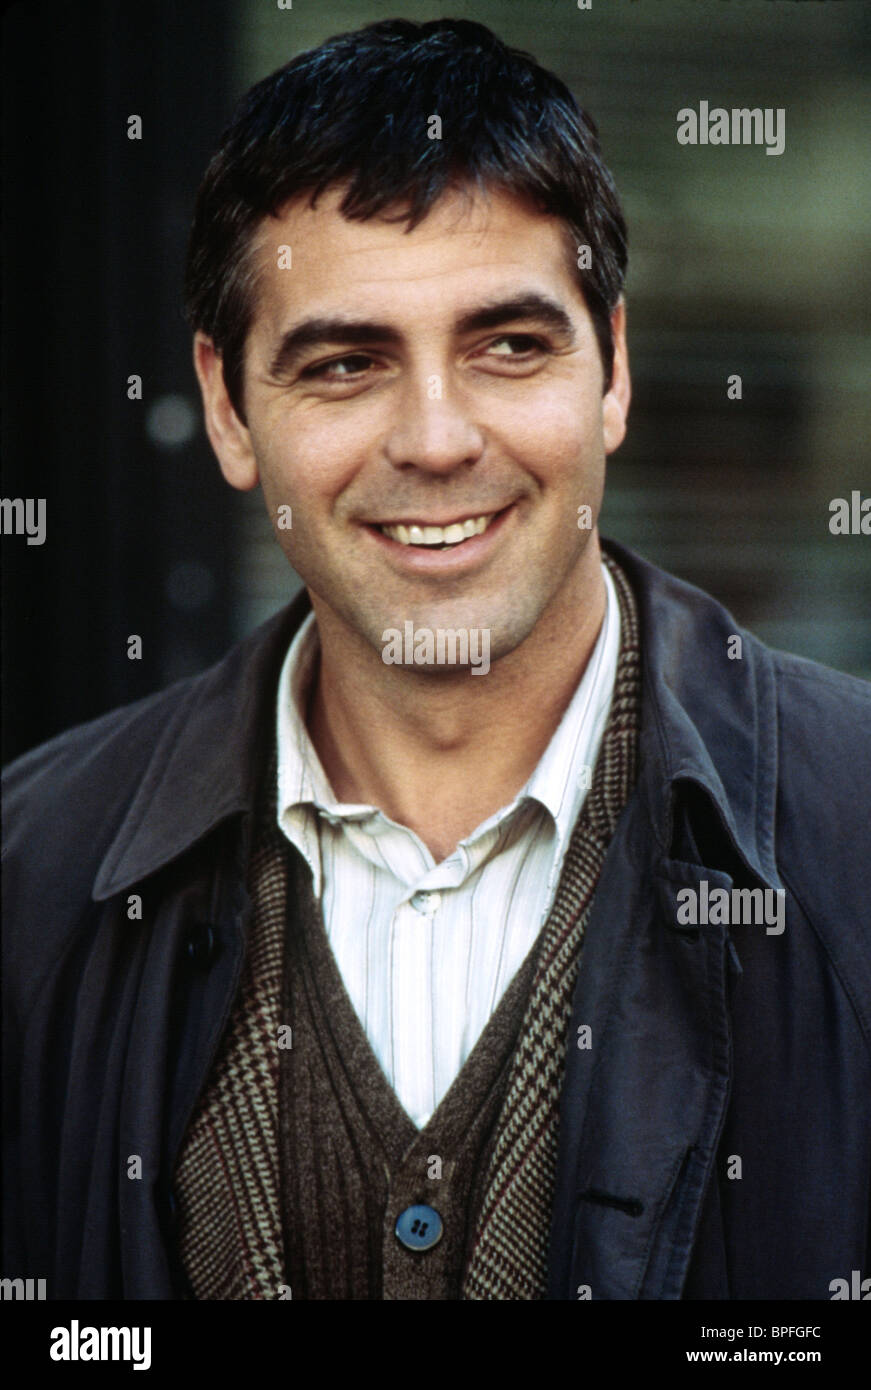 GEORGE CLOONEY ONE FINE DAY (1996) Stock Photo